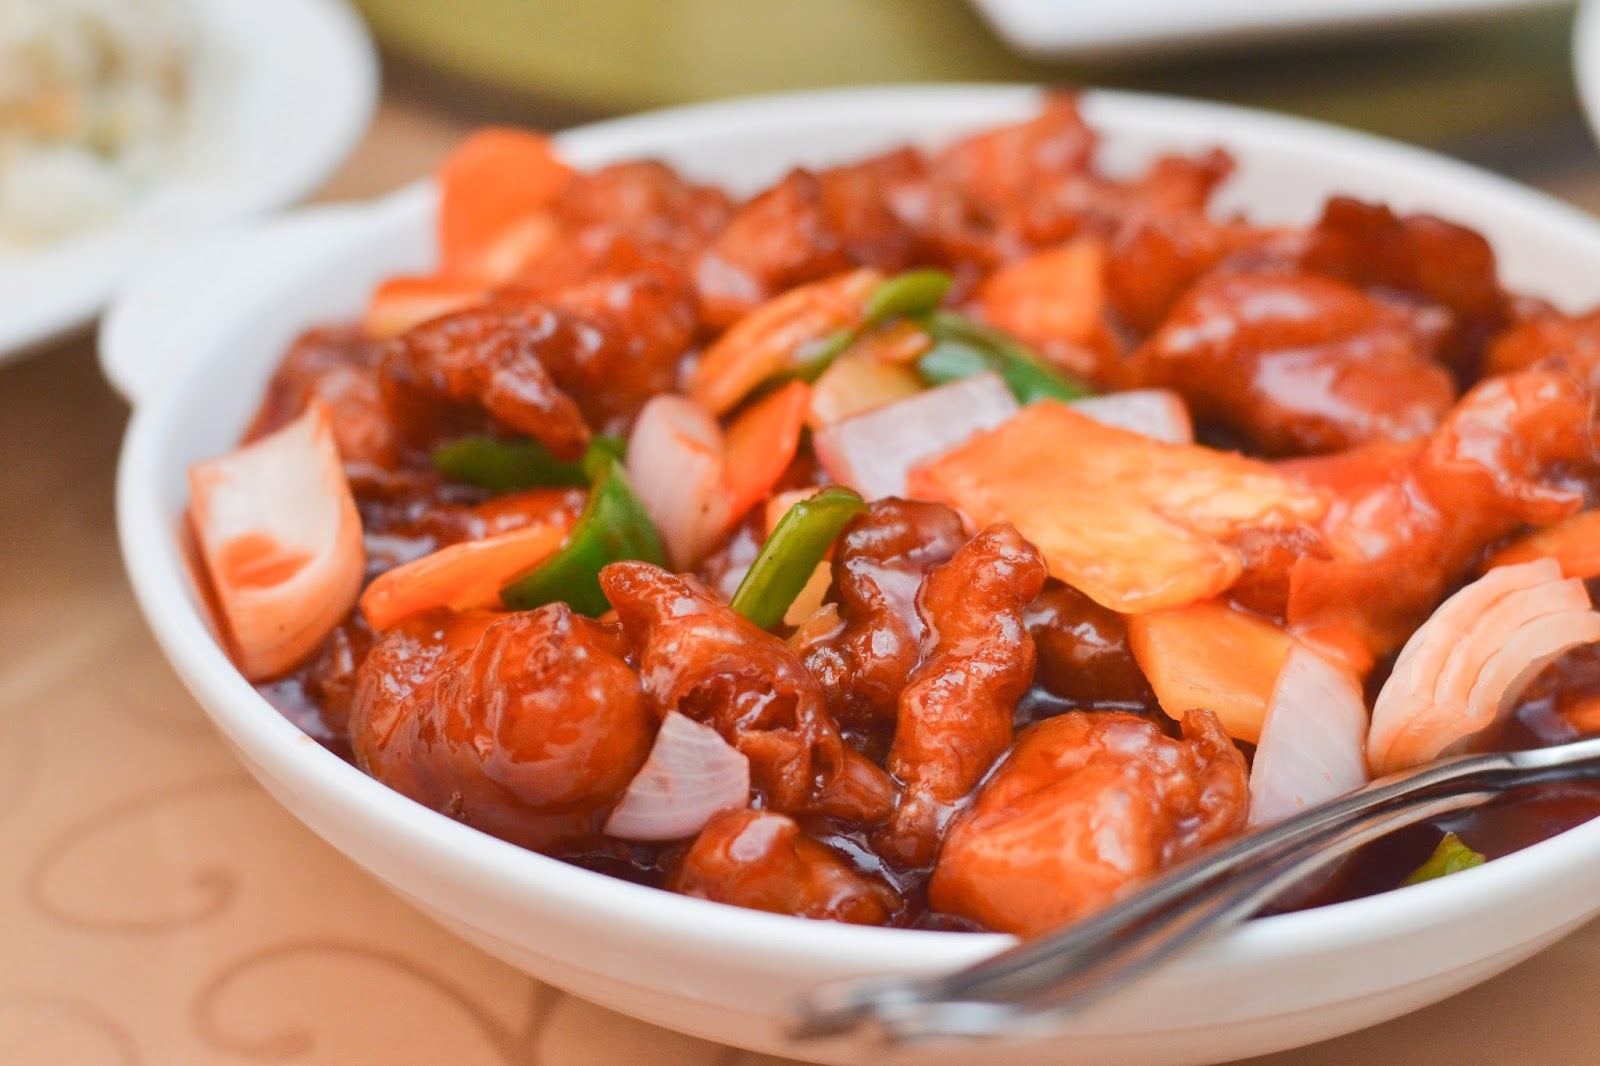 Chinese Sweet & Sour Chicken in Nigeria